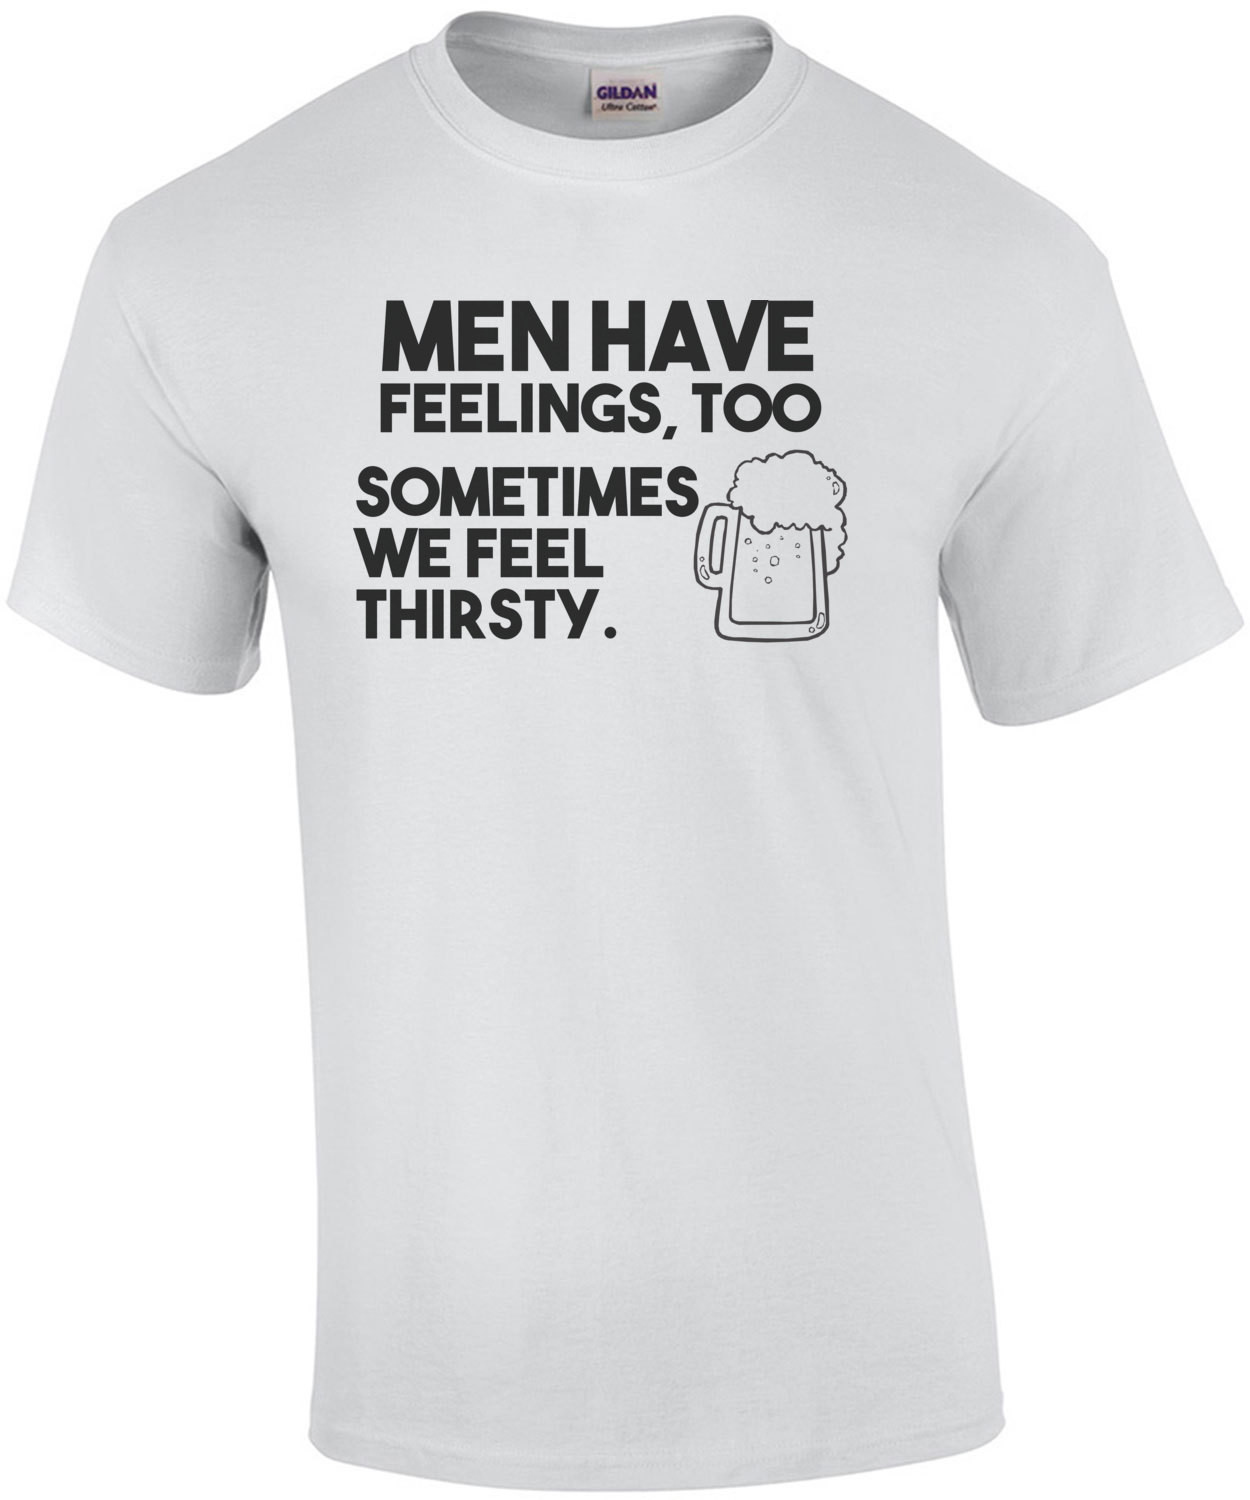 Men have feelings too sometimes we feel thirsty drinking t-shirt